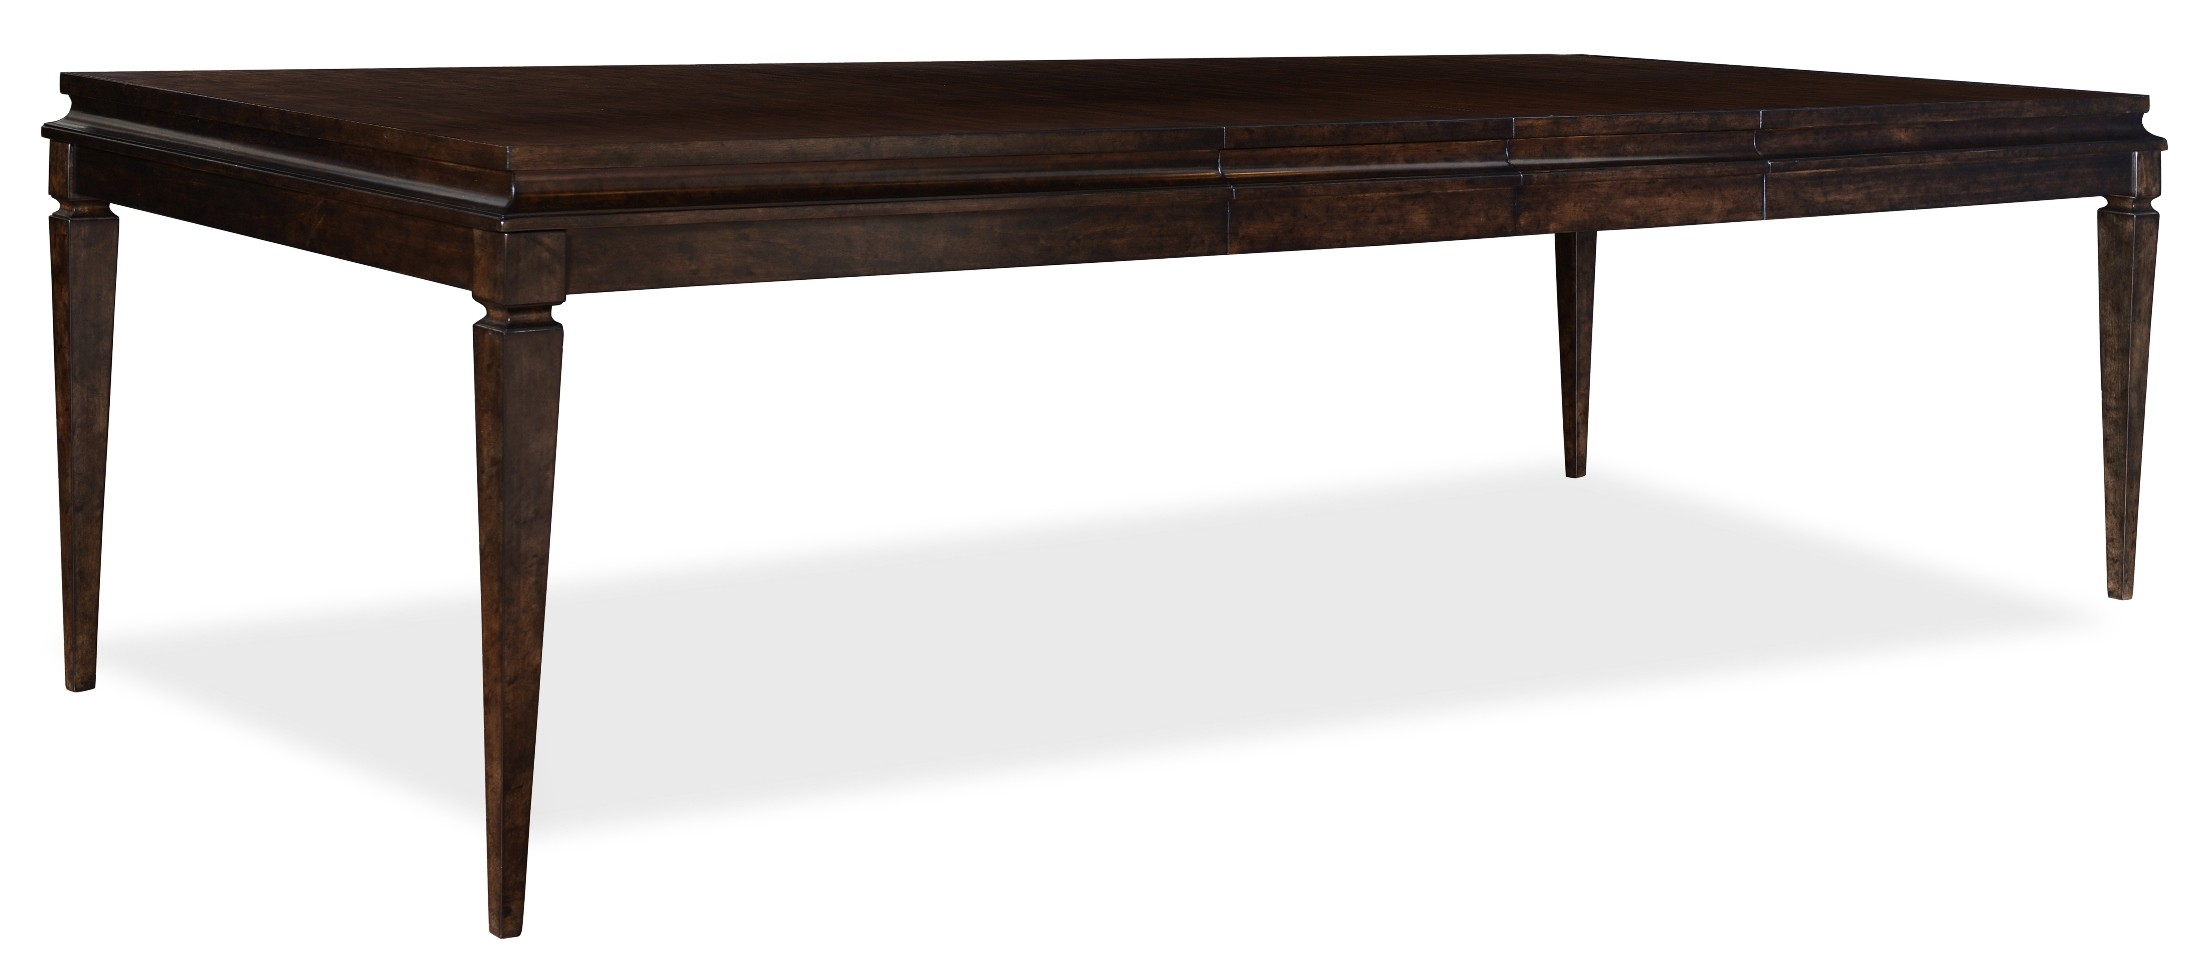 Classic Leg Dining Table From Art 202220 1715 Coleman